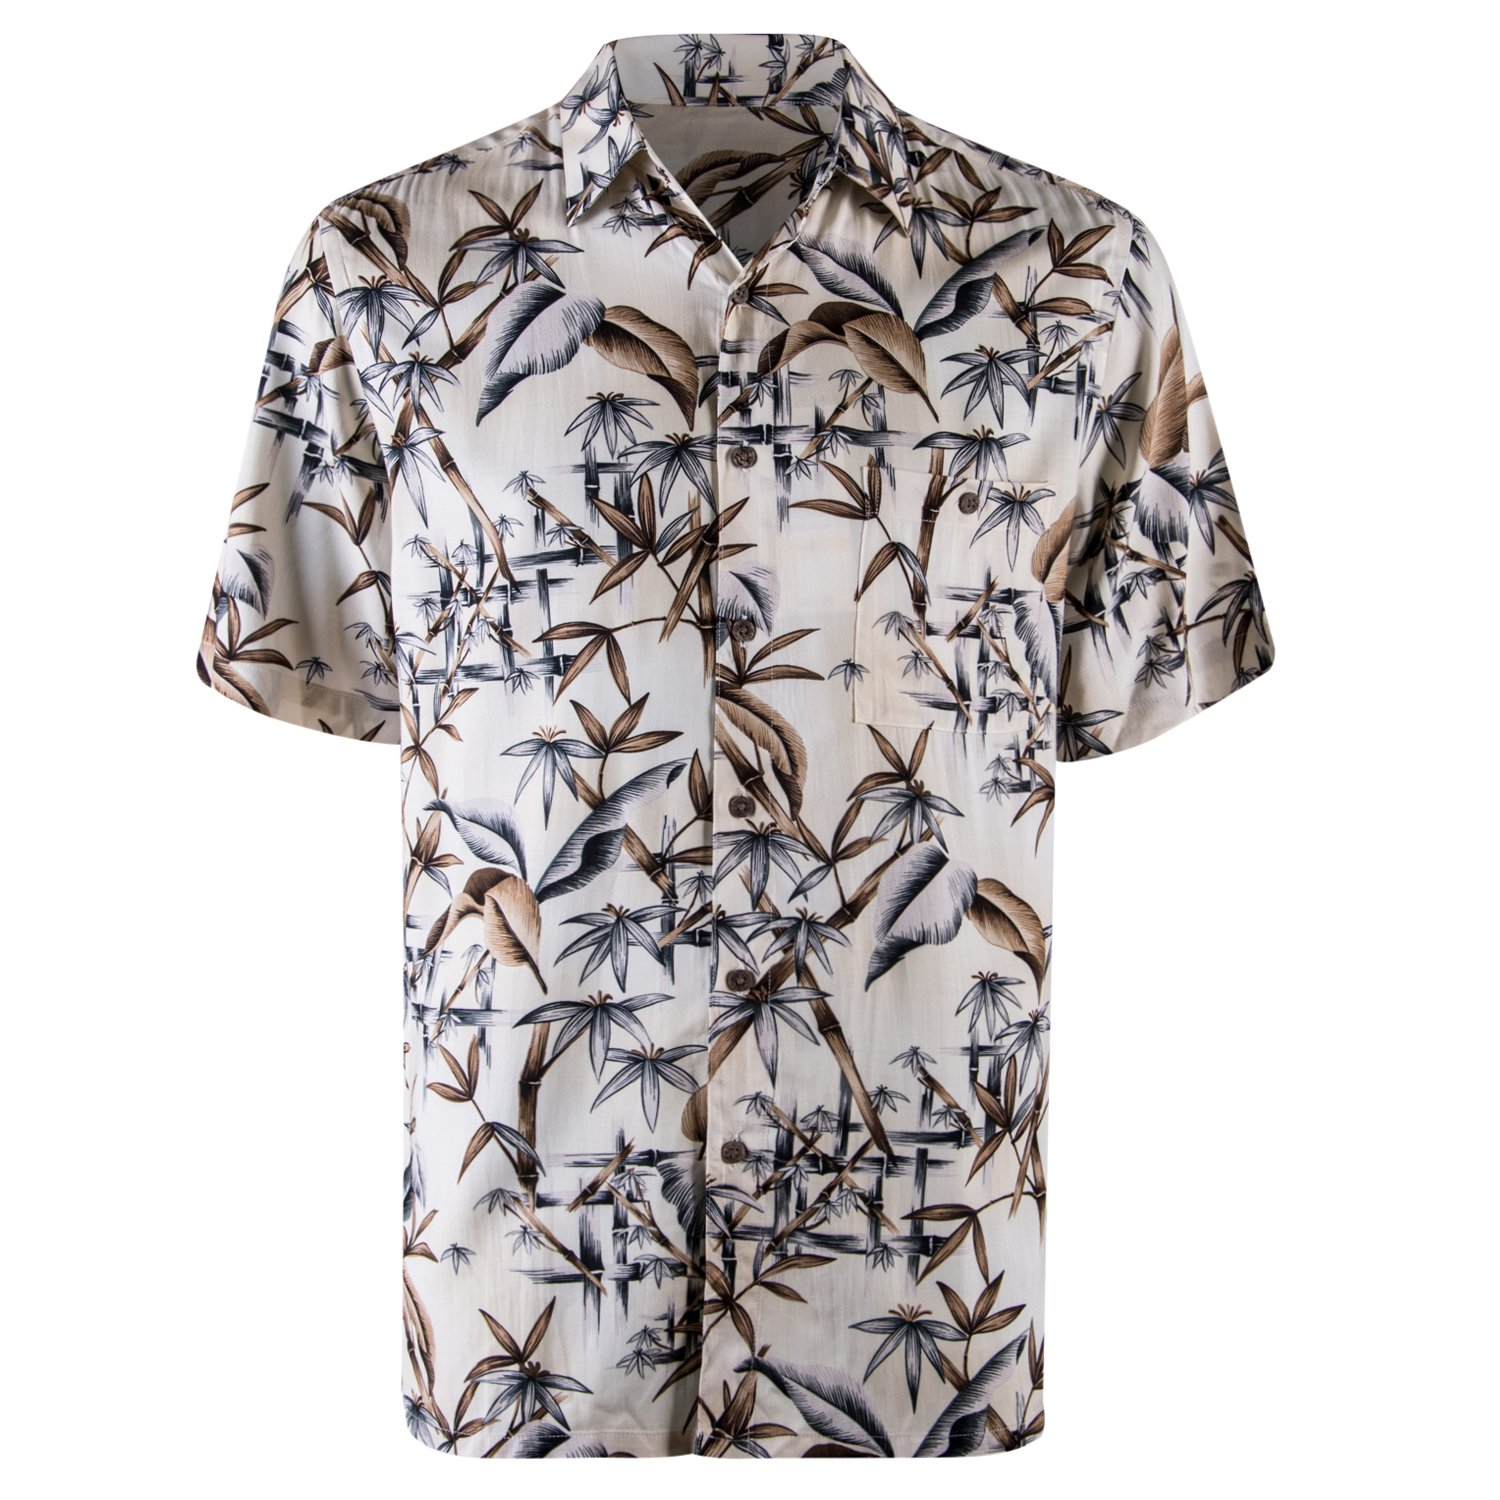 8e7f933e9594 Galleon - Campia Men s Rayon Print Shirt (Natural 17